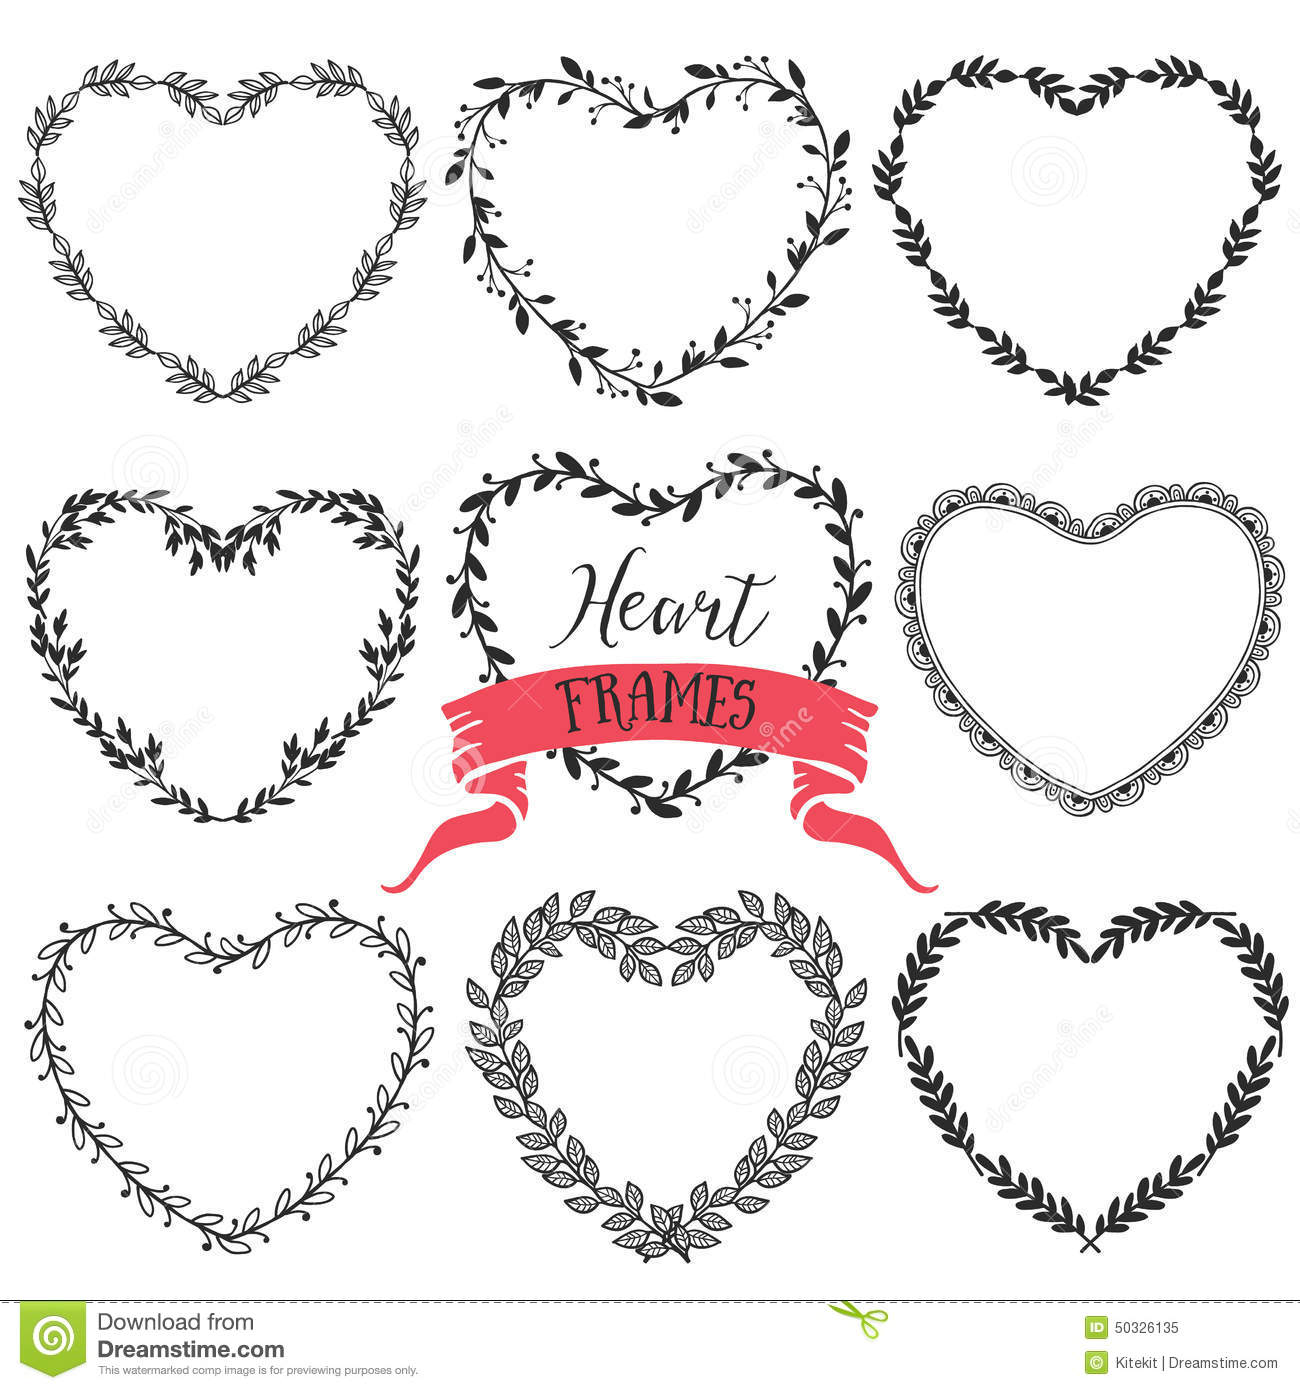 Download Hand Drawn Rustic Vintage Heart Wreaths Floral Vector Graphic Stock